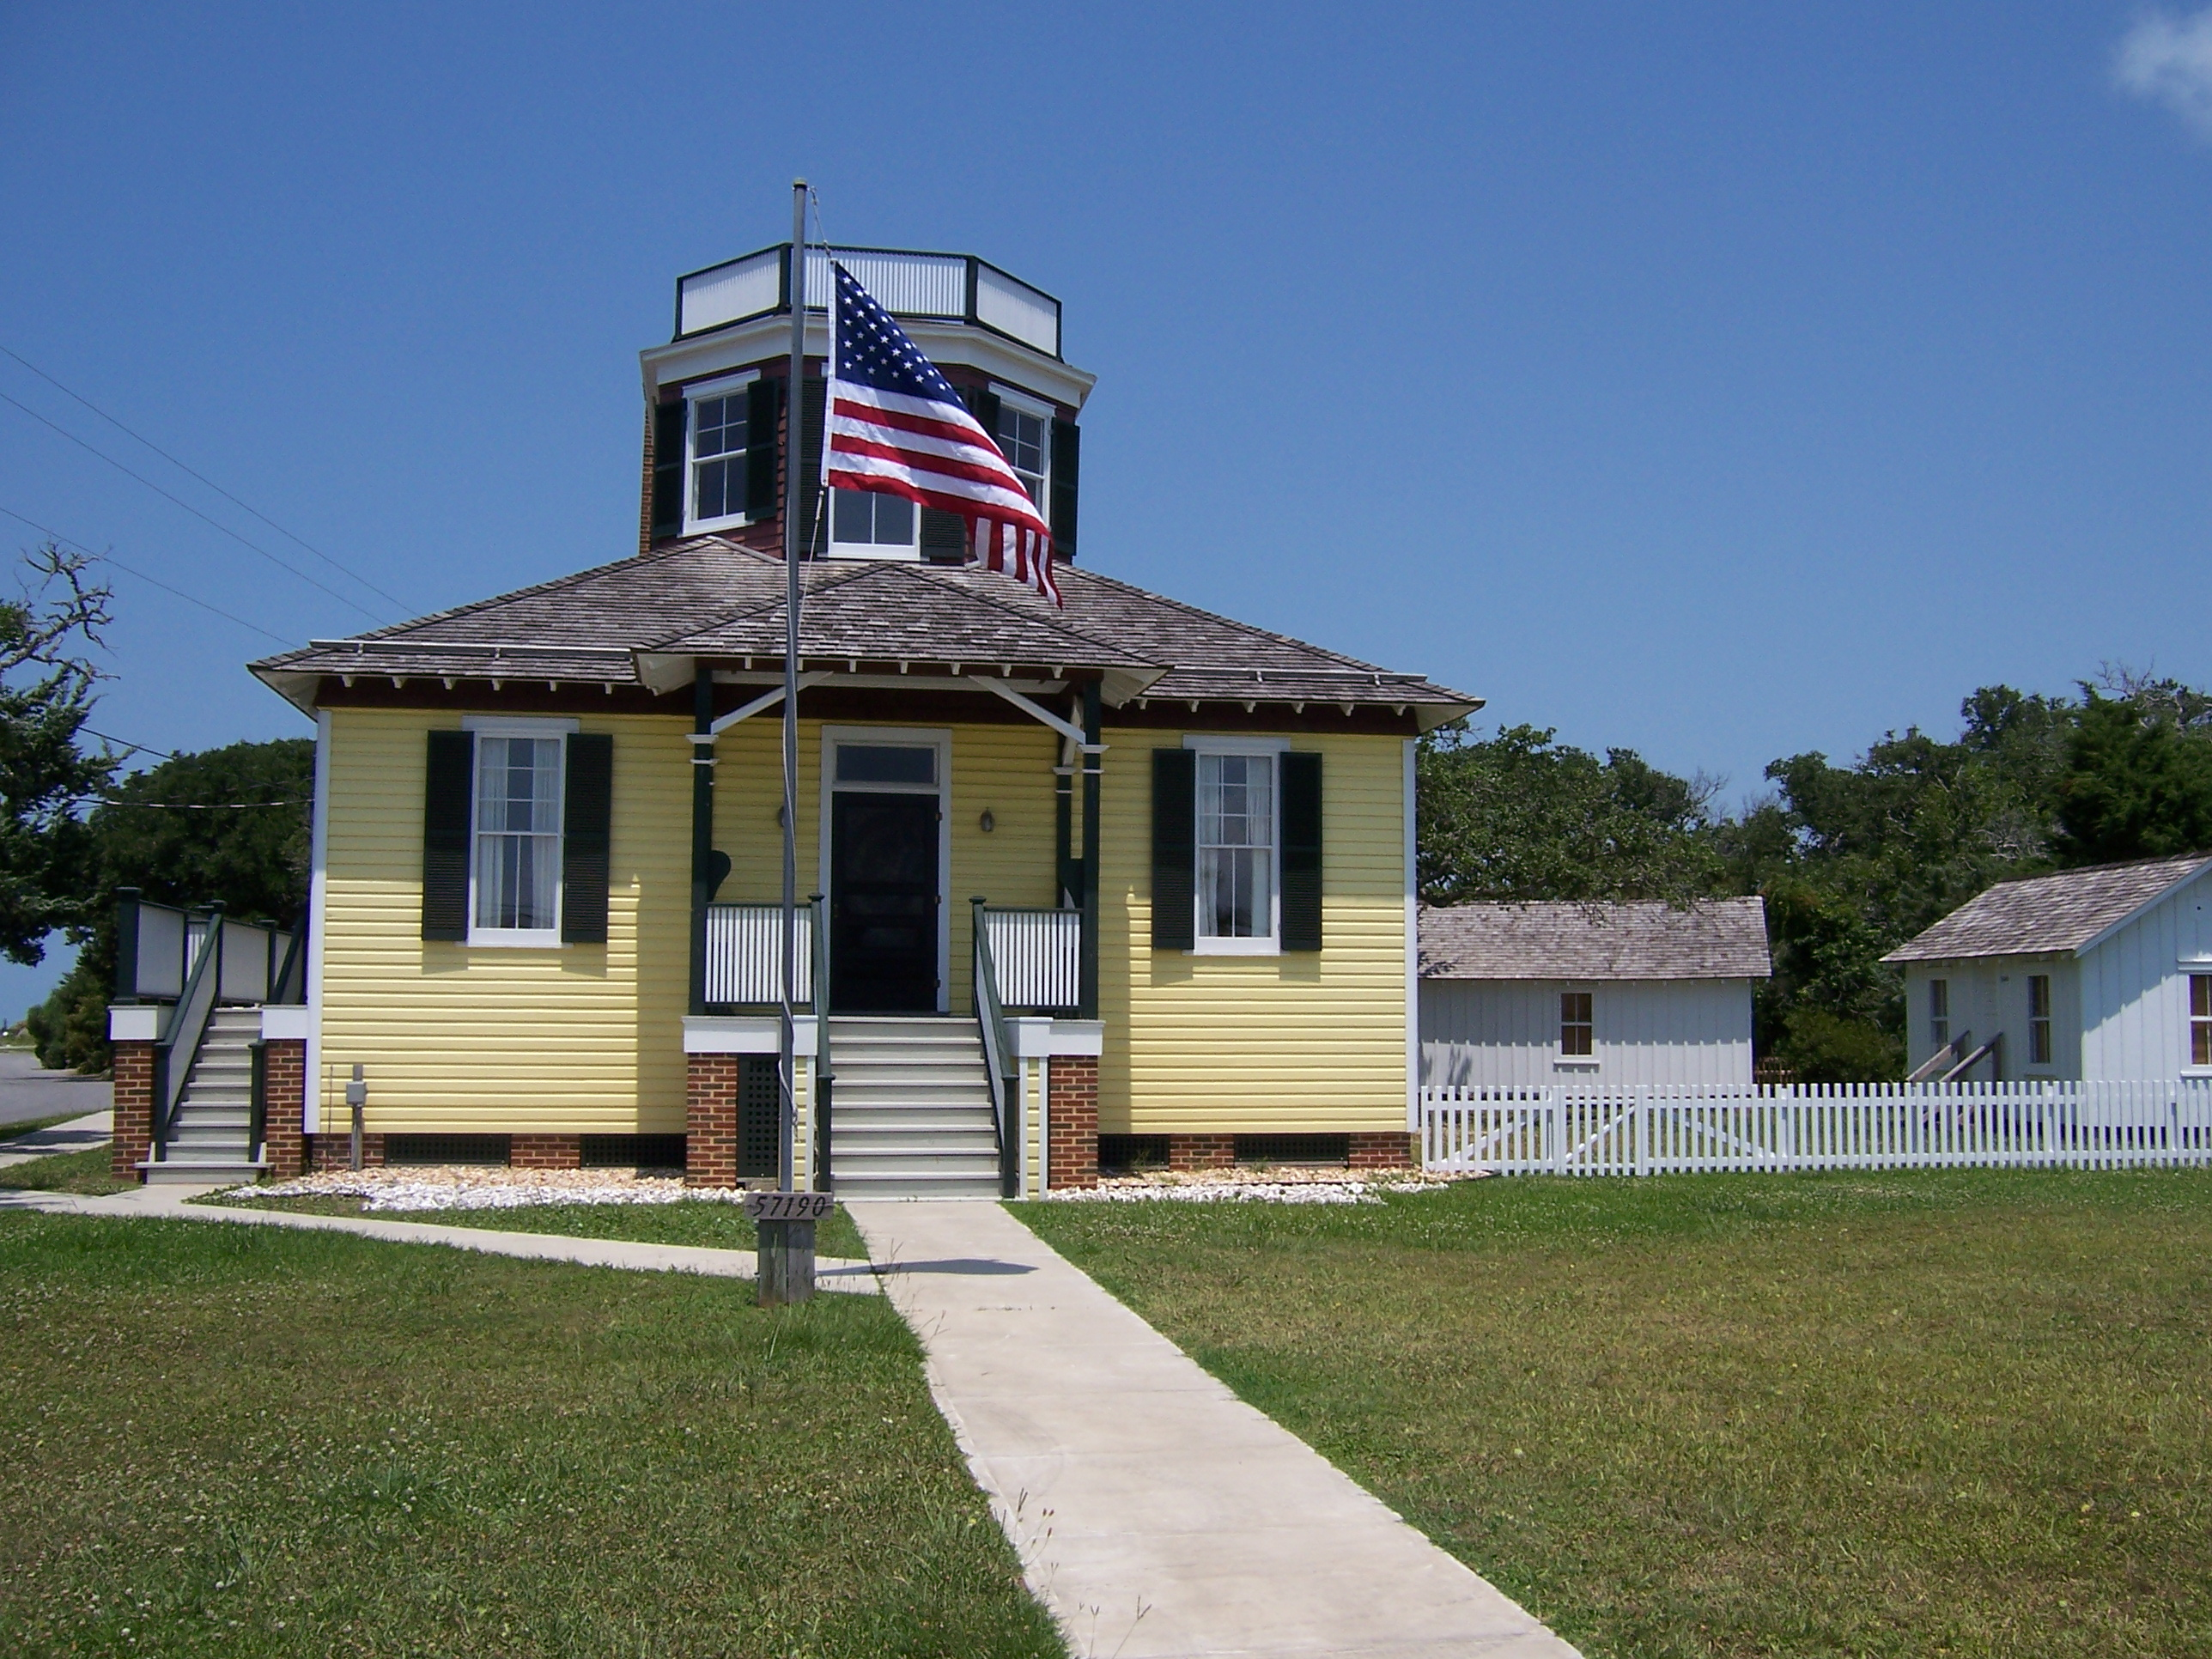 Hatteras Island U.S. Weather Bureau Station